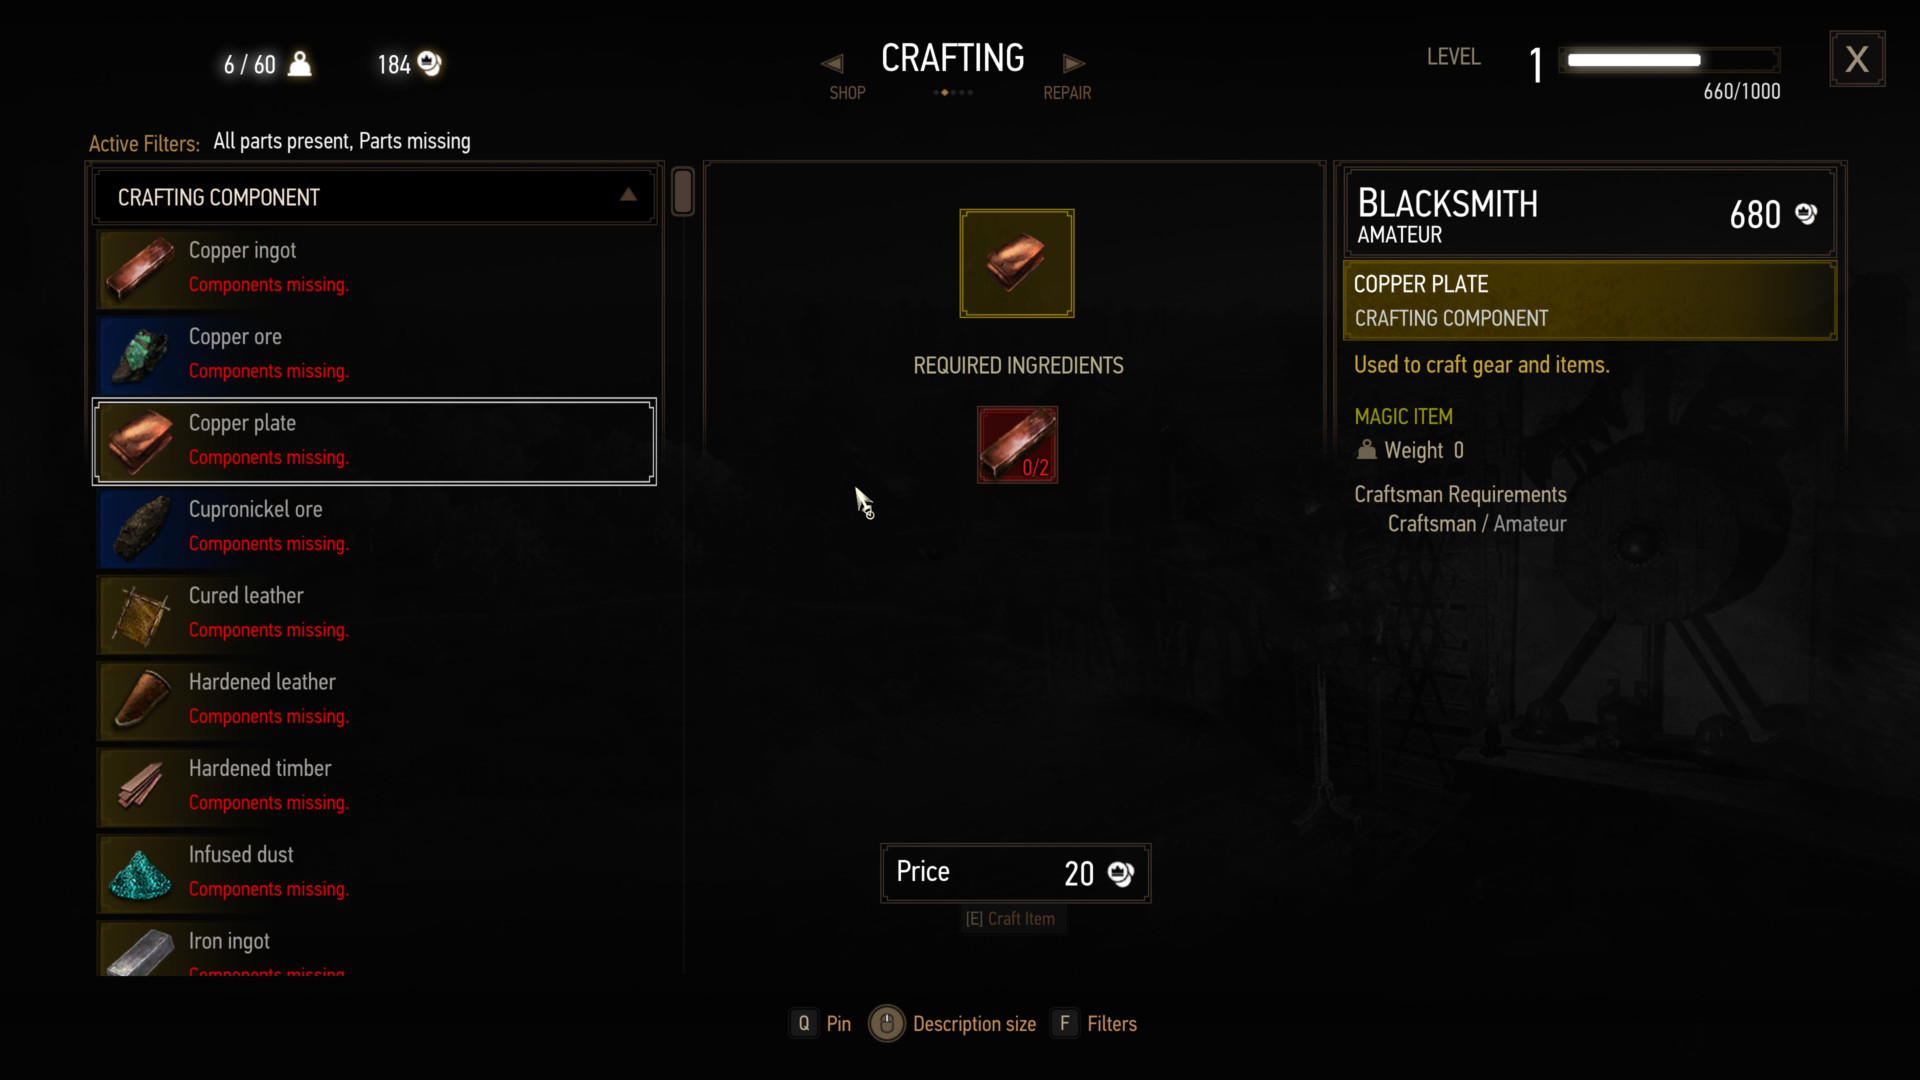 Crafting screenshot of The Witcher 3: Wild Hunt video game interface.